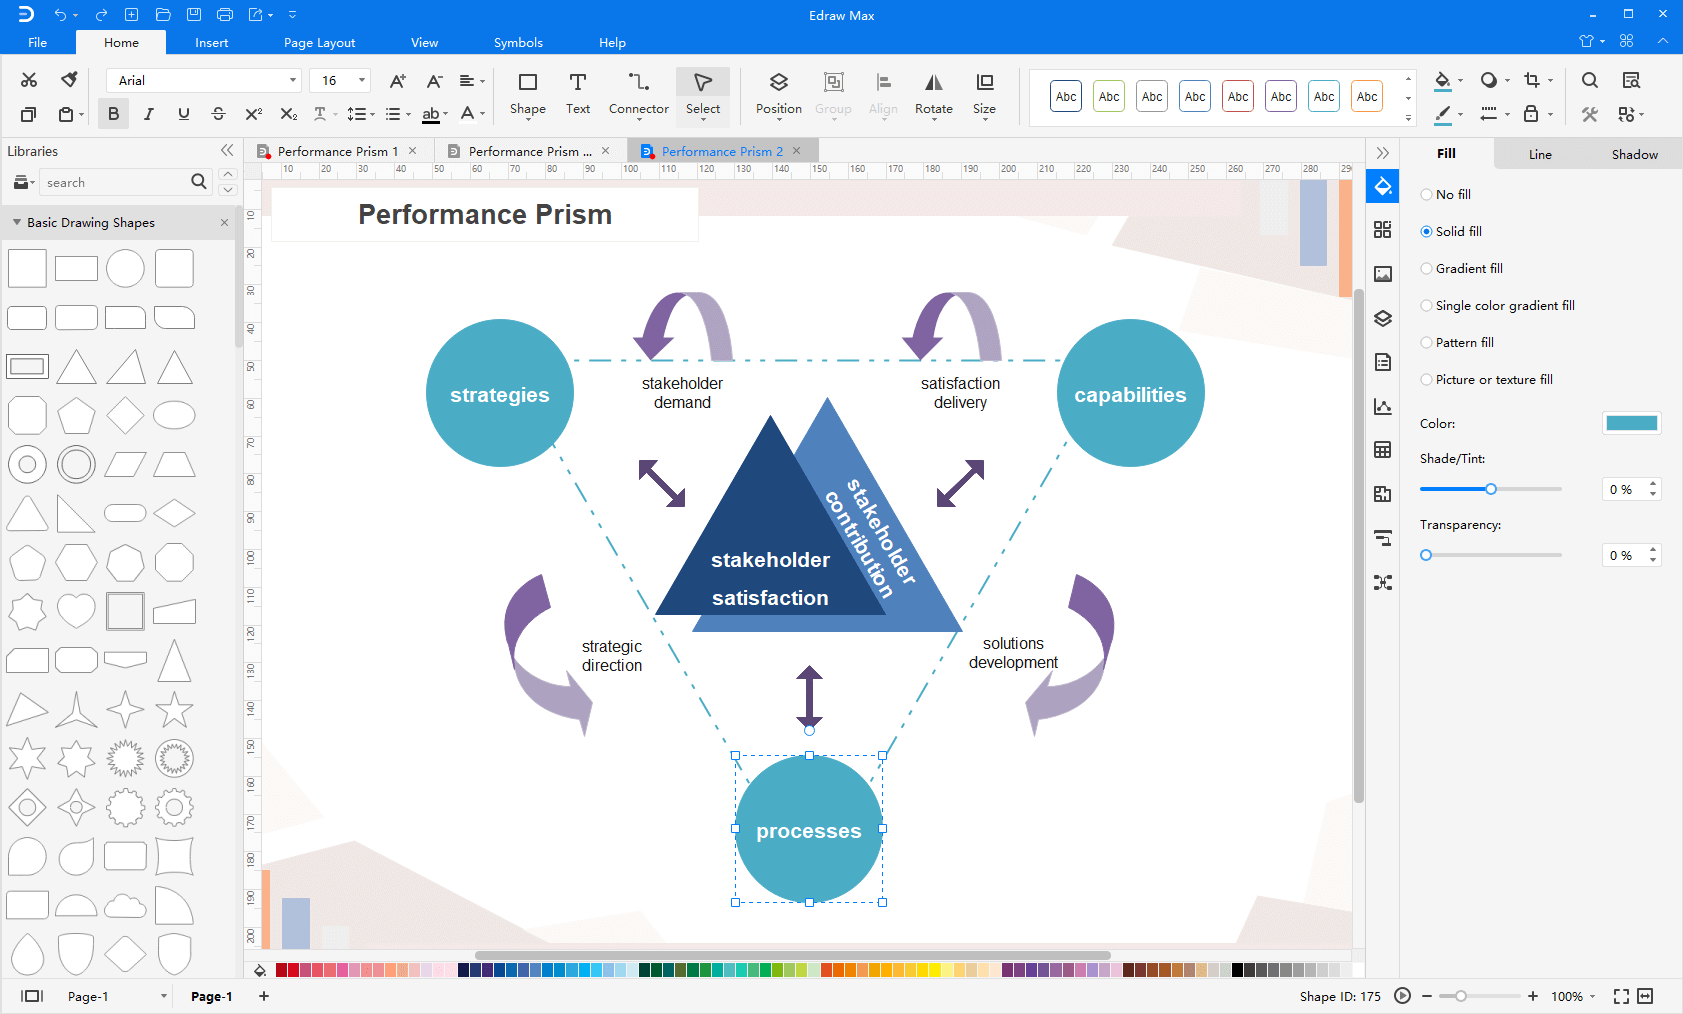 performance prism in Edraw Max